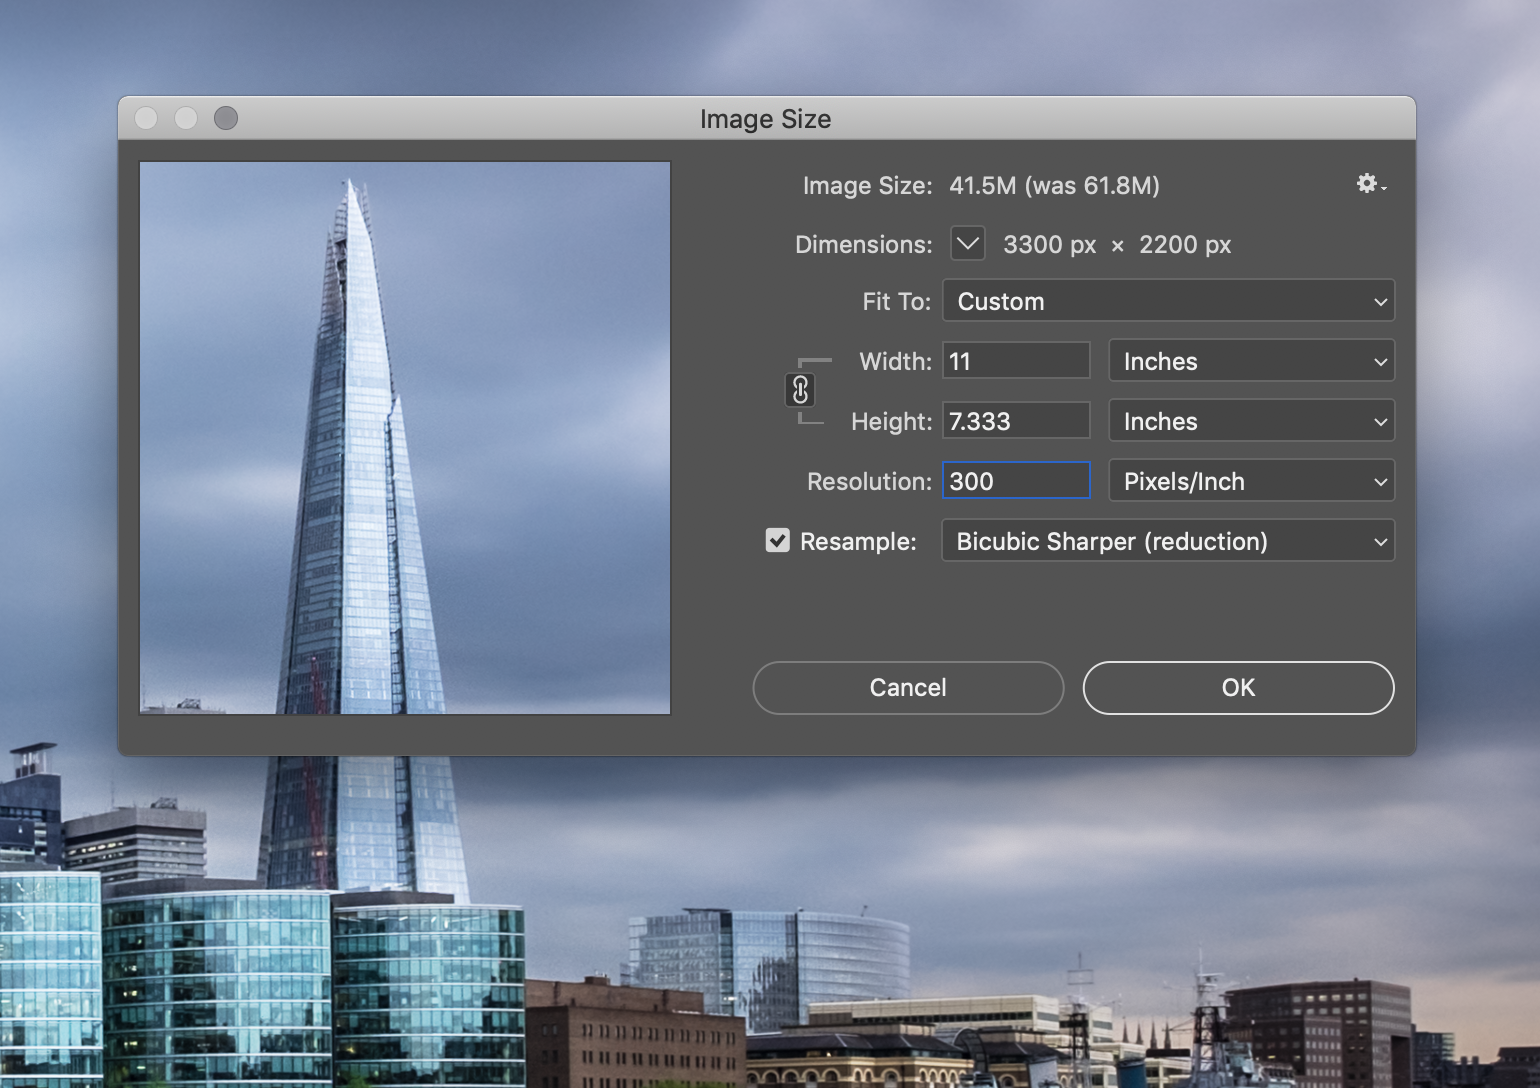 Screenshot of settings used to resize the image